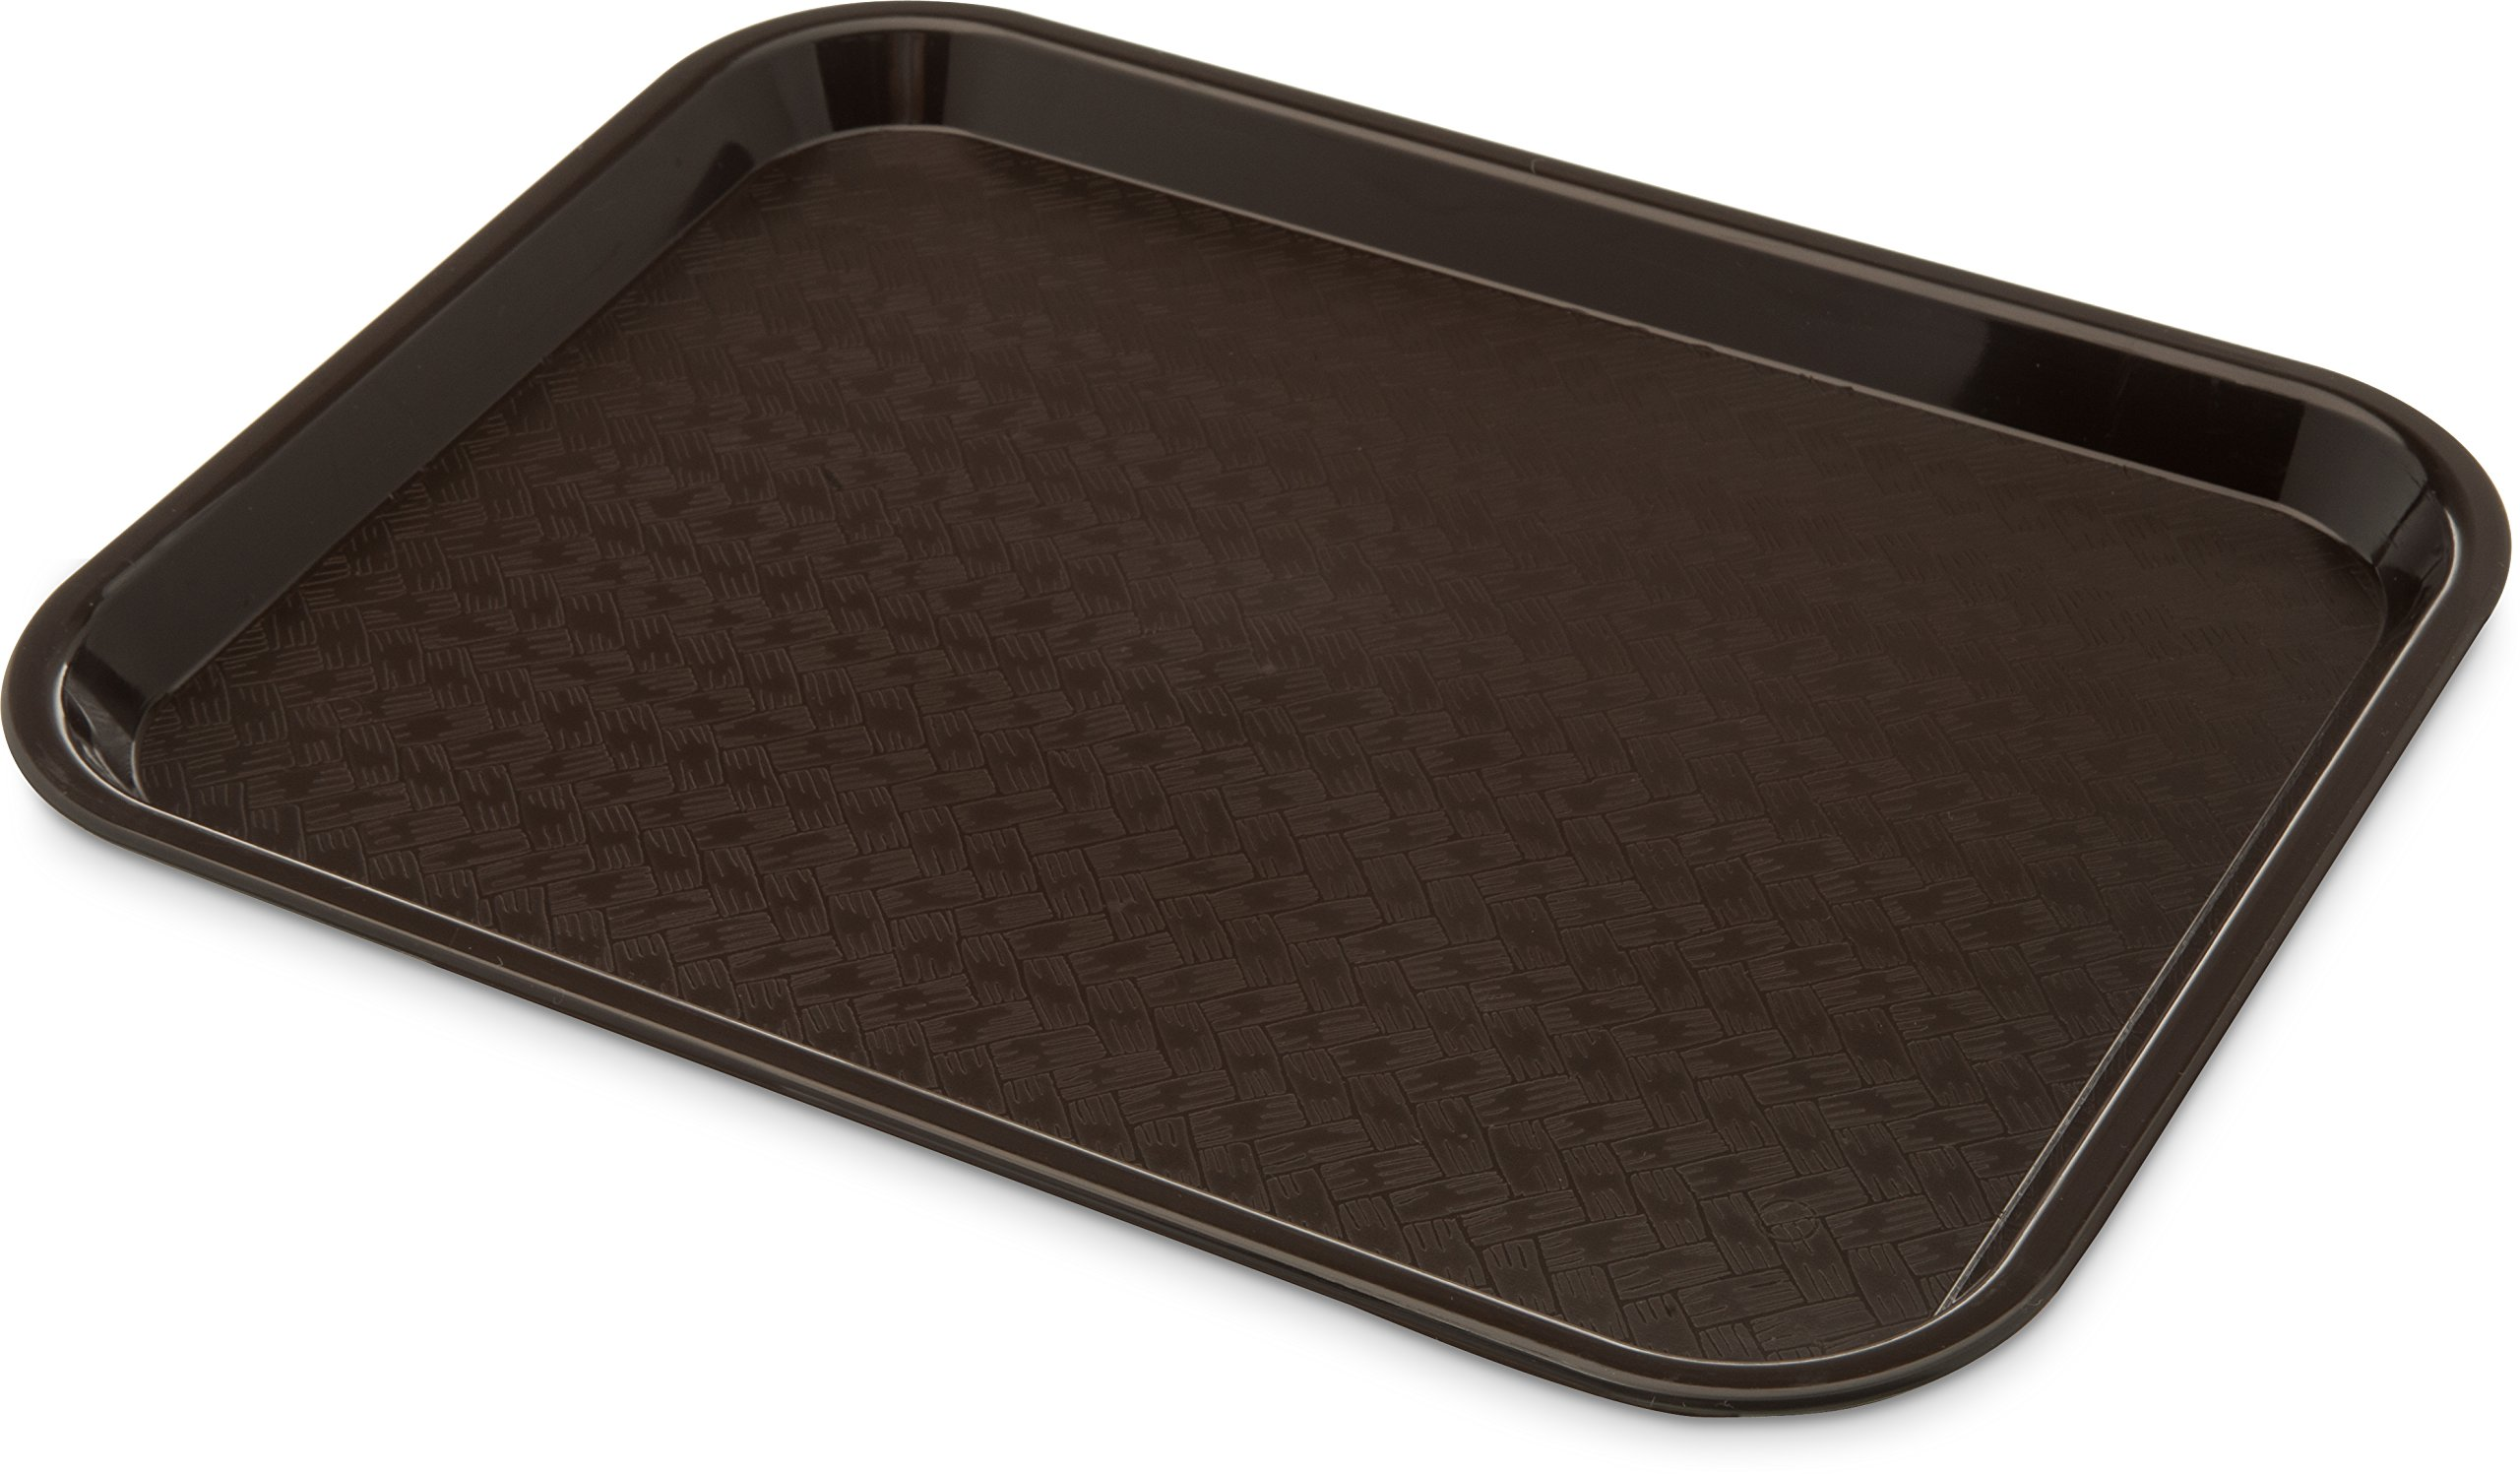 Carlisle CT101469 Café Standard Cafeteria / Fast Food Tray, 10'' x 14'', Dark Brown